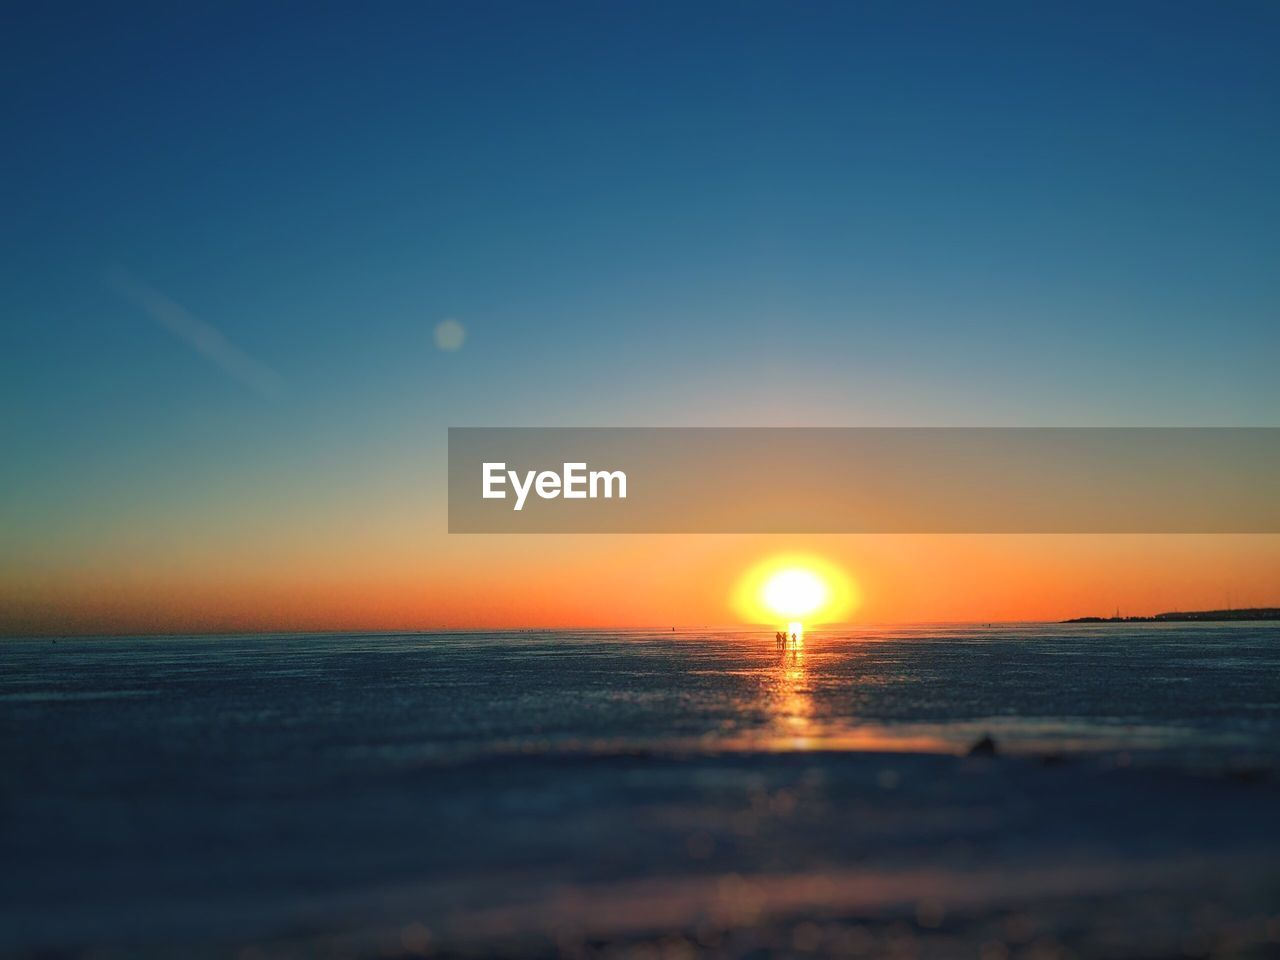 sky, sea, water, beauty in nature, scenics - nature, horizon over water, sunset, horizon, tranquility, sun, tranquil scene, orange color, idyllic, beach, land, nature, clear sky, no people, non-urban scene, outdoors